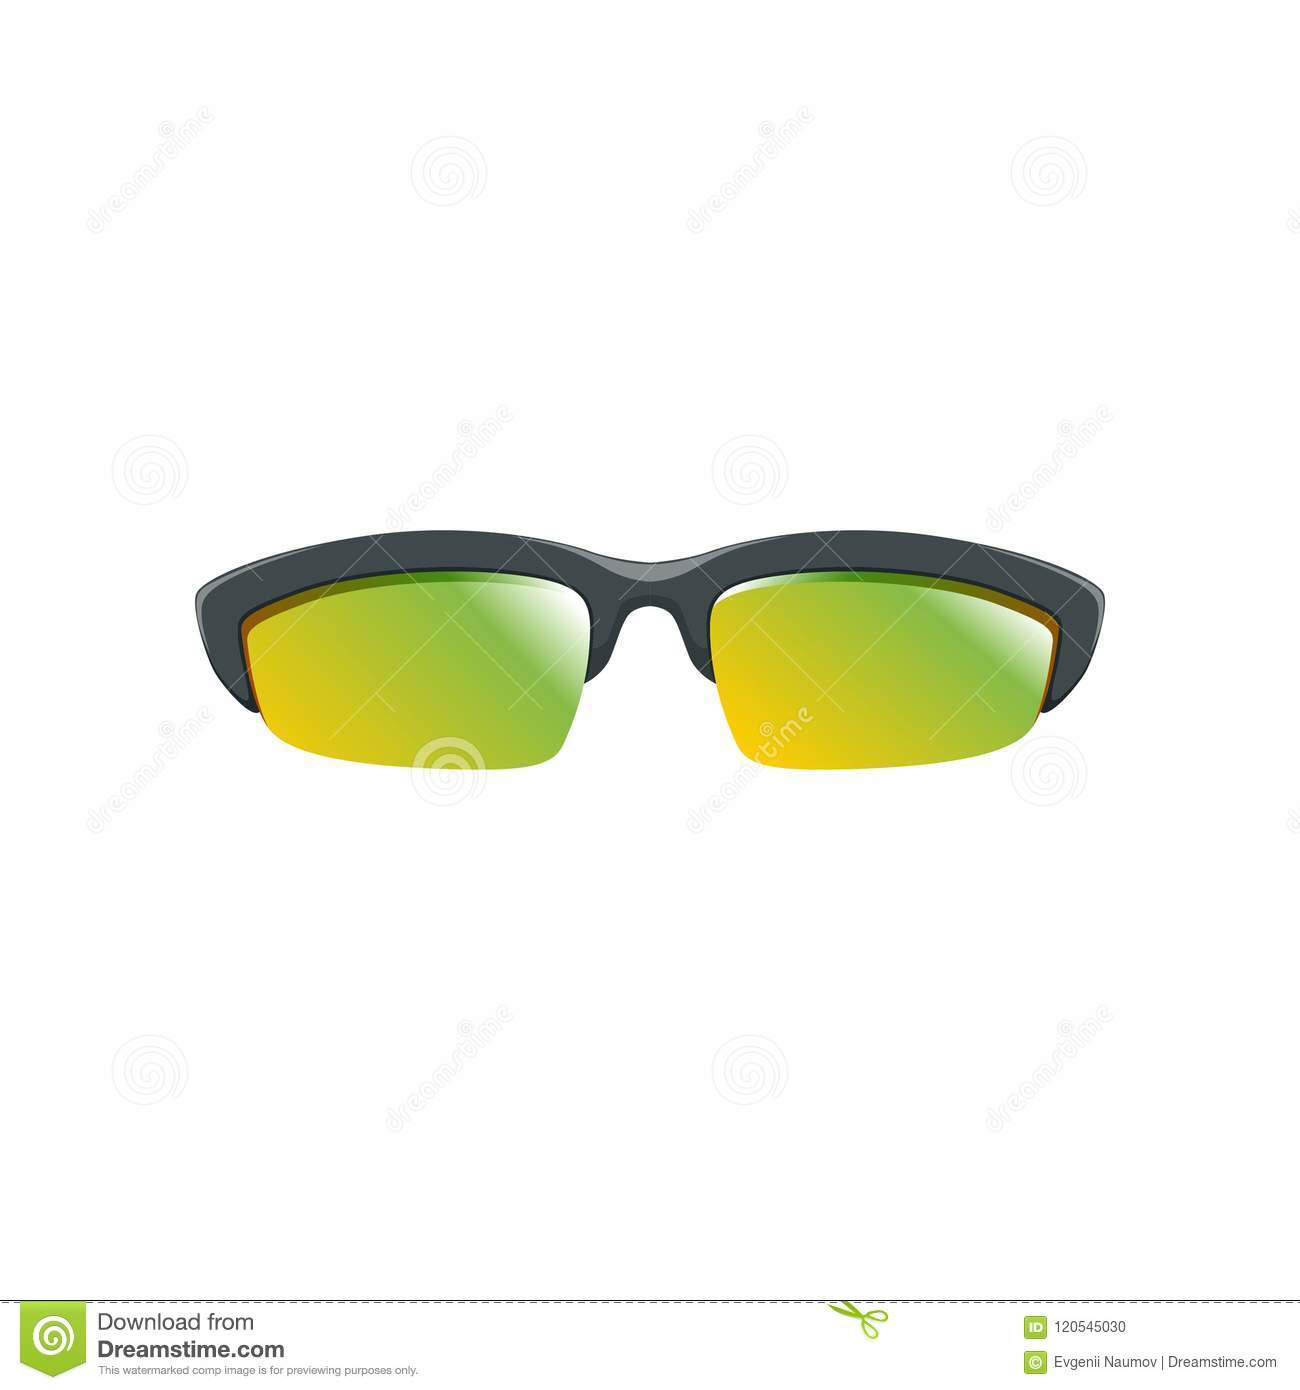 f34ff1e6526 Sport sunglasses with yellow-green polarized lenses and black half frame.  Cartoon style icon of protective eyeglasses. Accessory for men and women.  Colorful ...